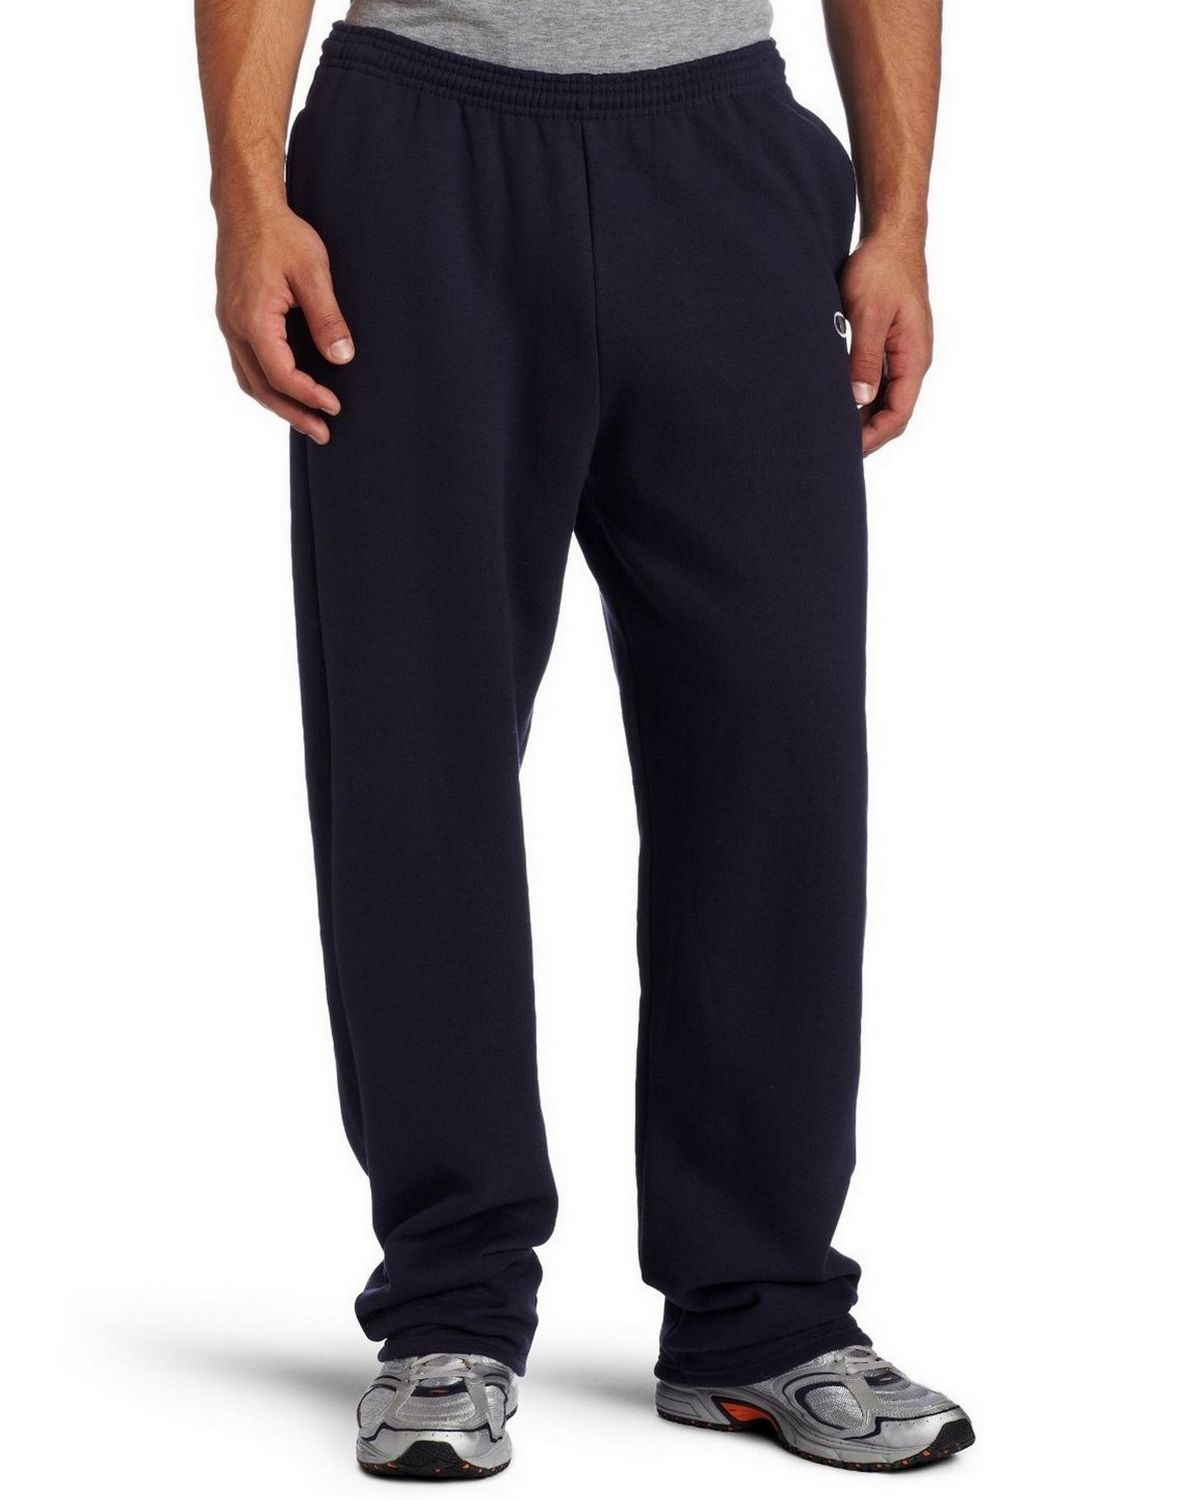 Champion P2469 Eco Open Bottom Pant - Navy - S P2469